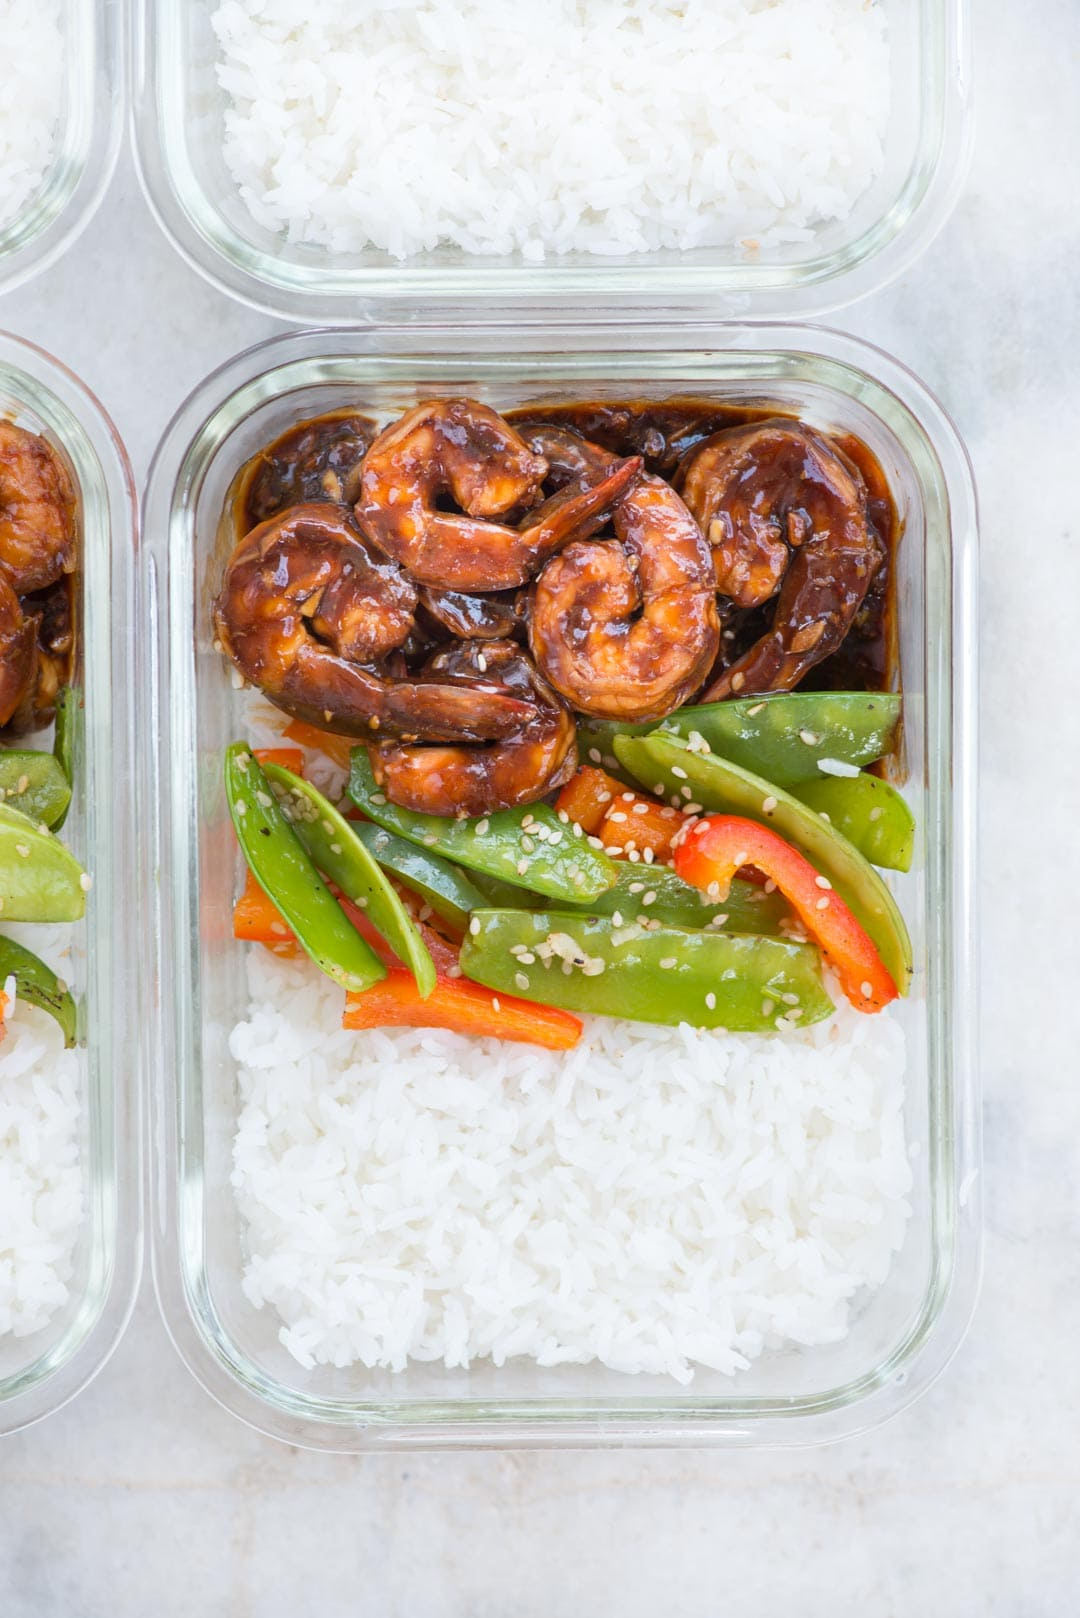 Vegetable Shrimp Stir fry with an incredible sauce takes less than 30 minutes to prepare. Make it ahead and it is perfect for healthy meal prep.